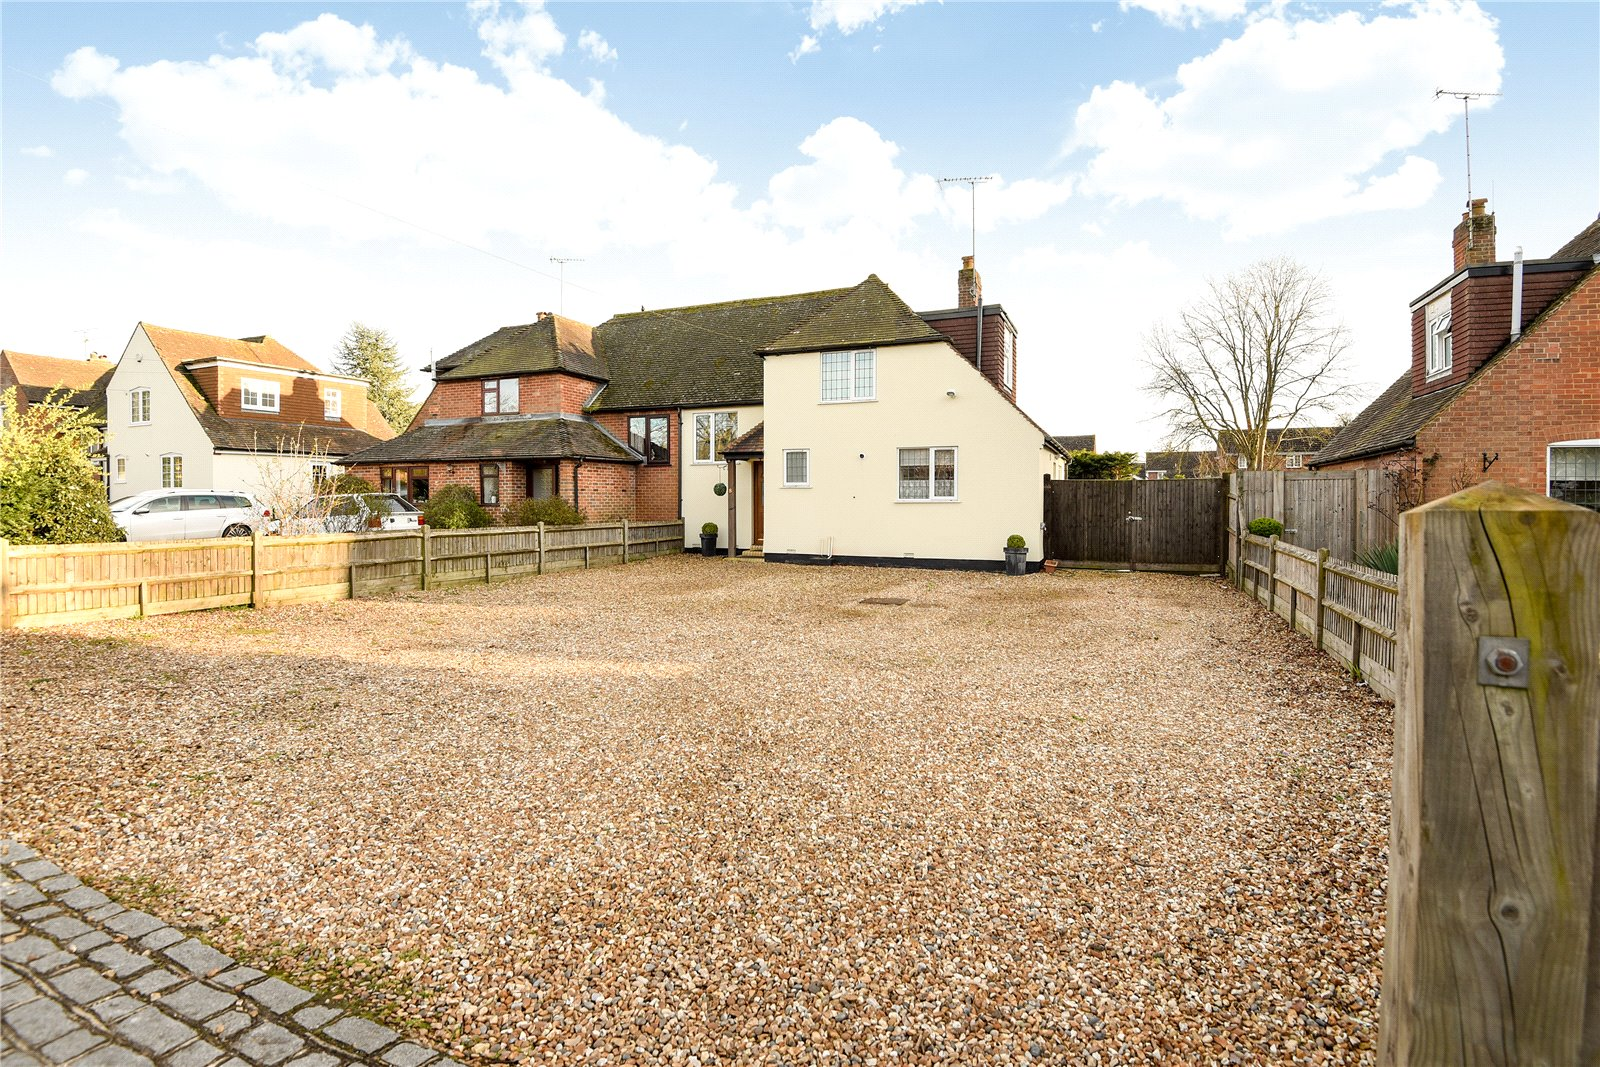 3 Bedrooms Semi Detached House for sale in The Village, Finchampstead, Wokingham, Berkshire, RG40